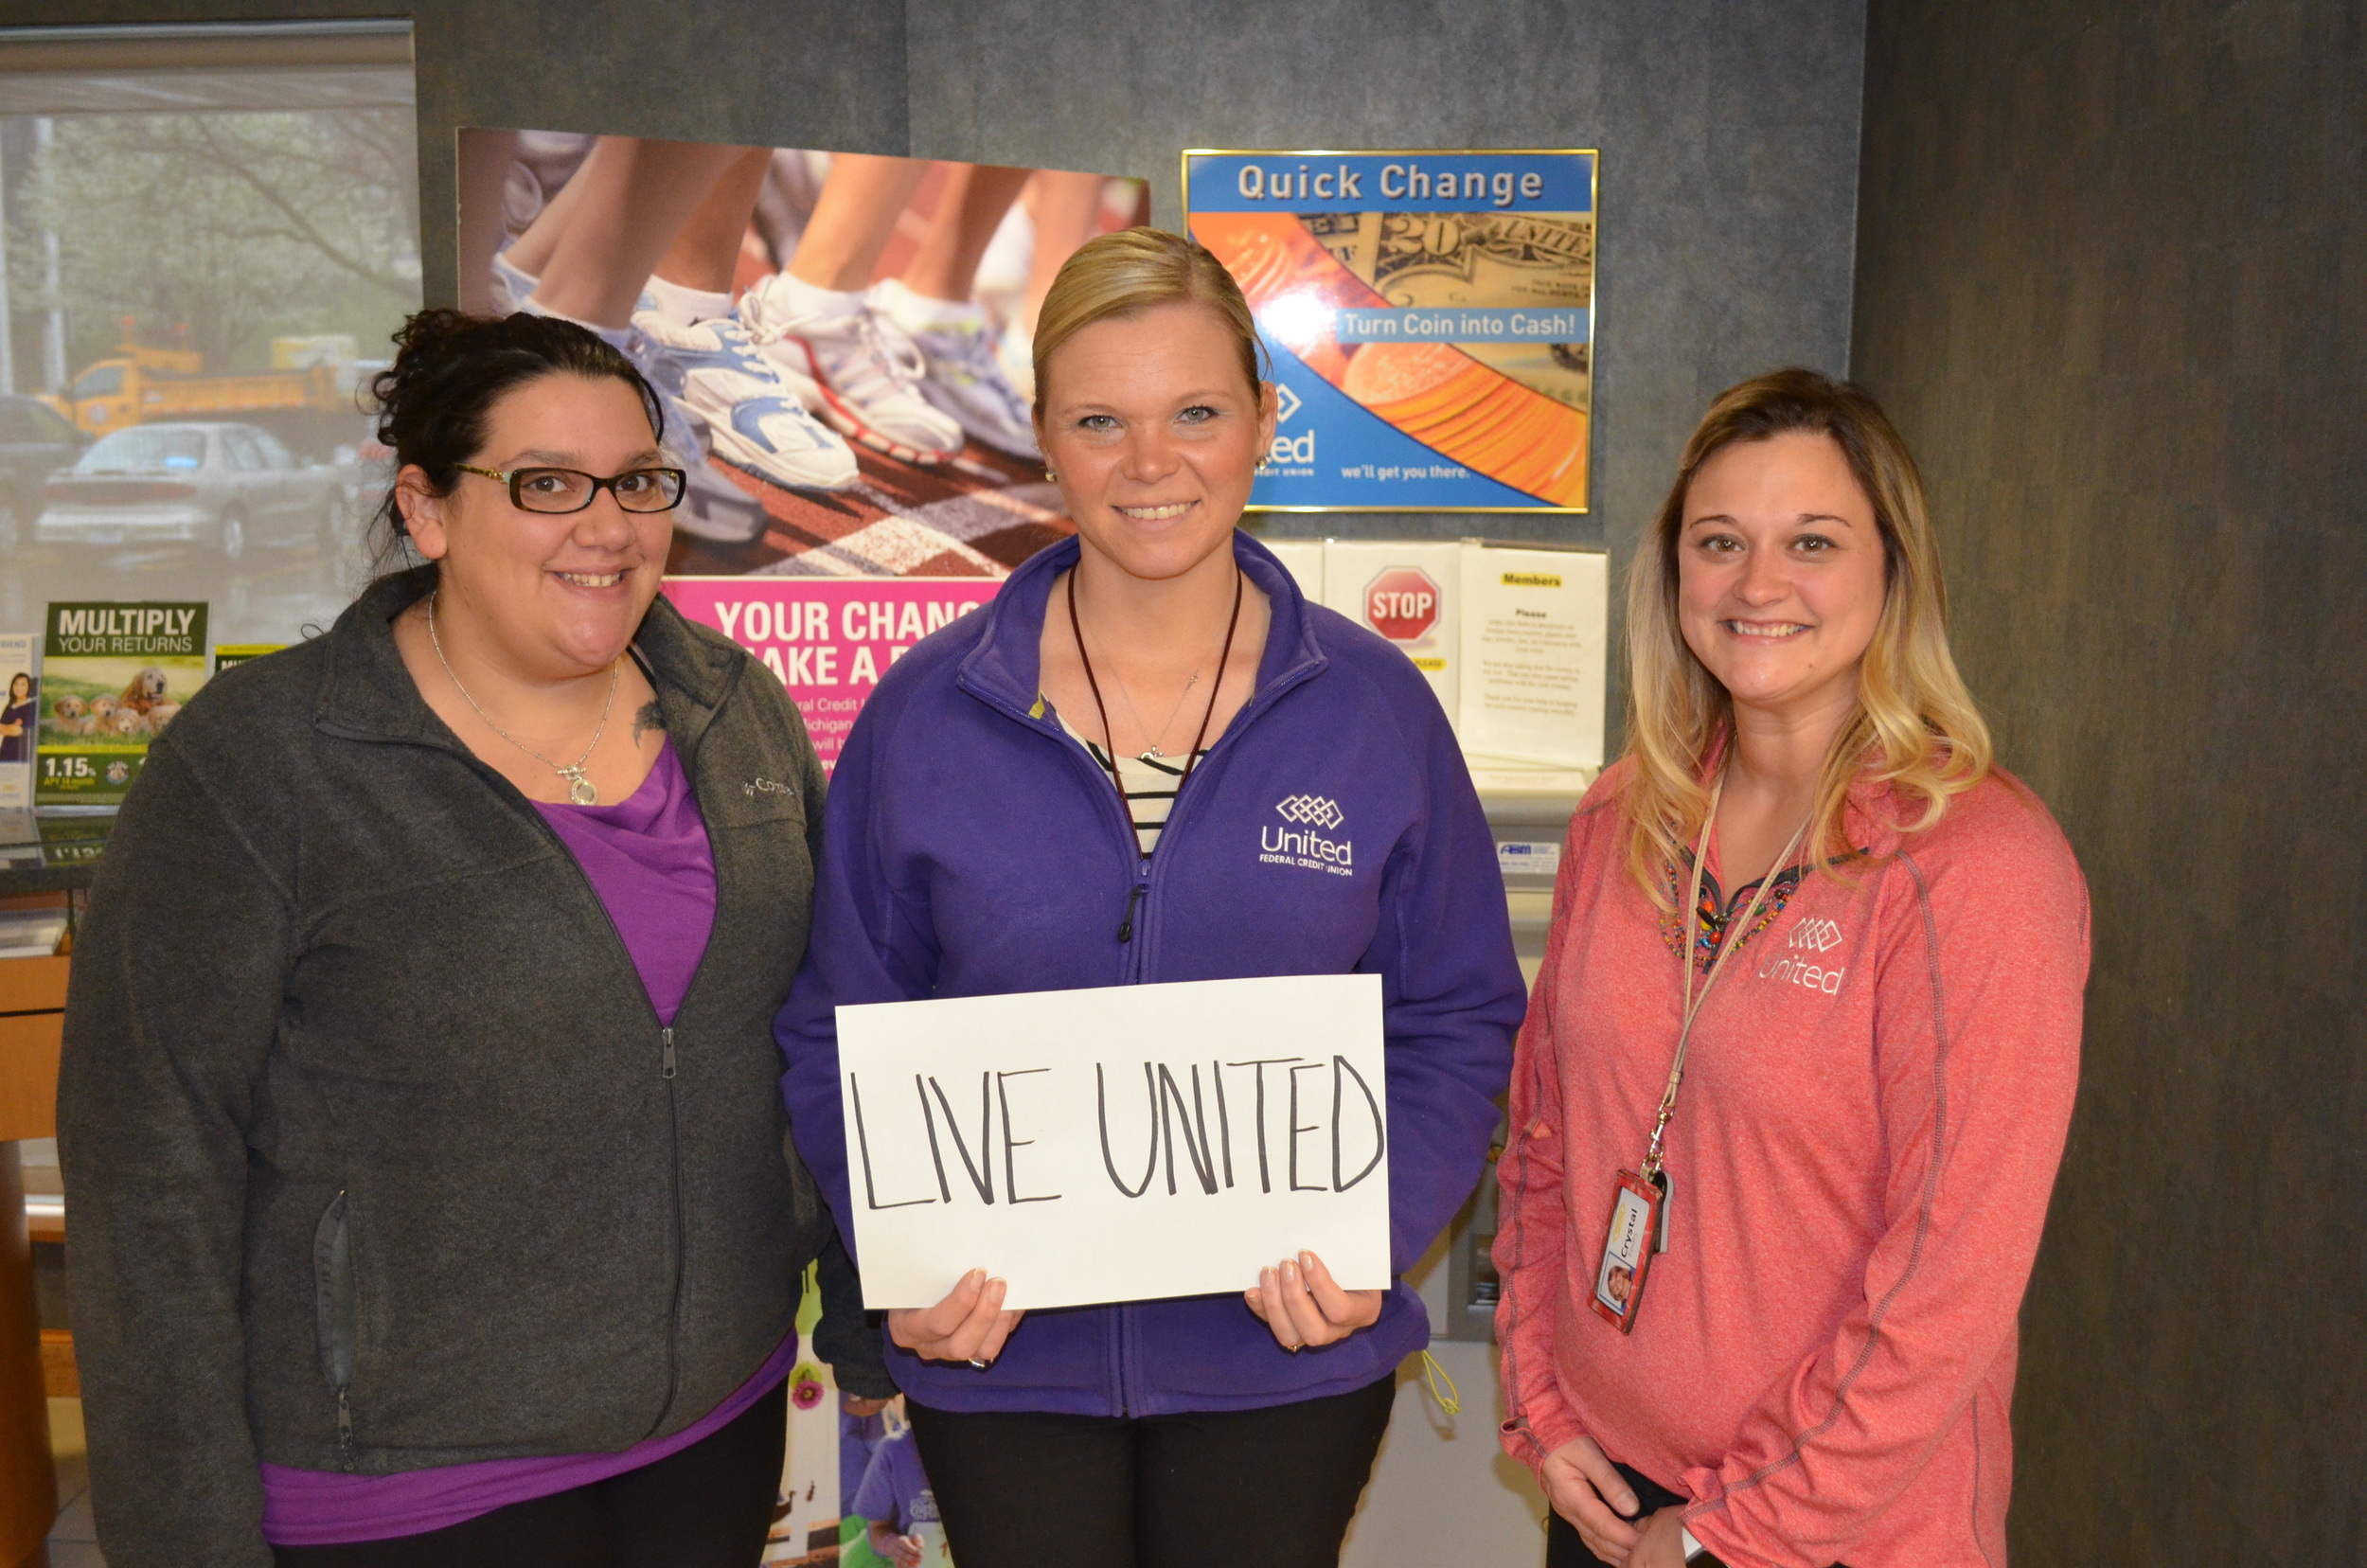 Niles Branch (left to right): Erin Fuson, Stephanie Tucker, Crystal Fouts